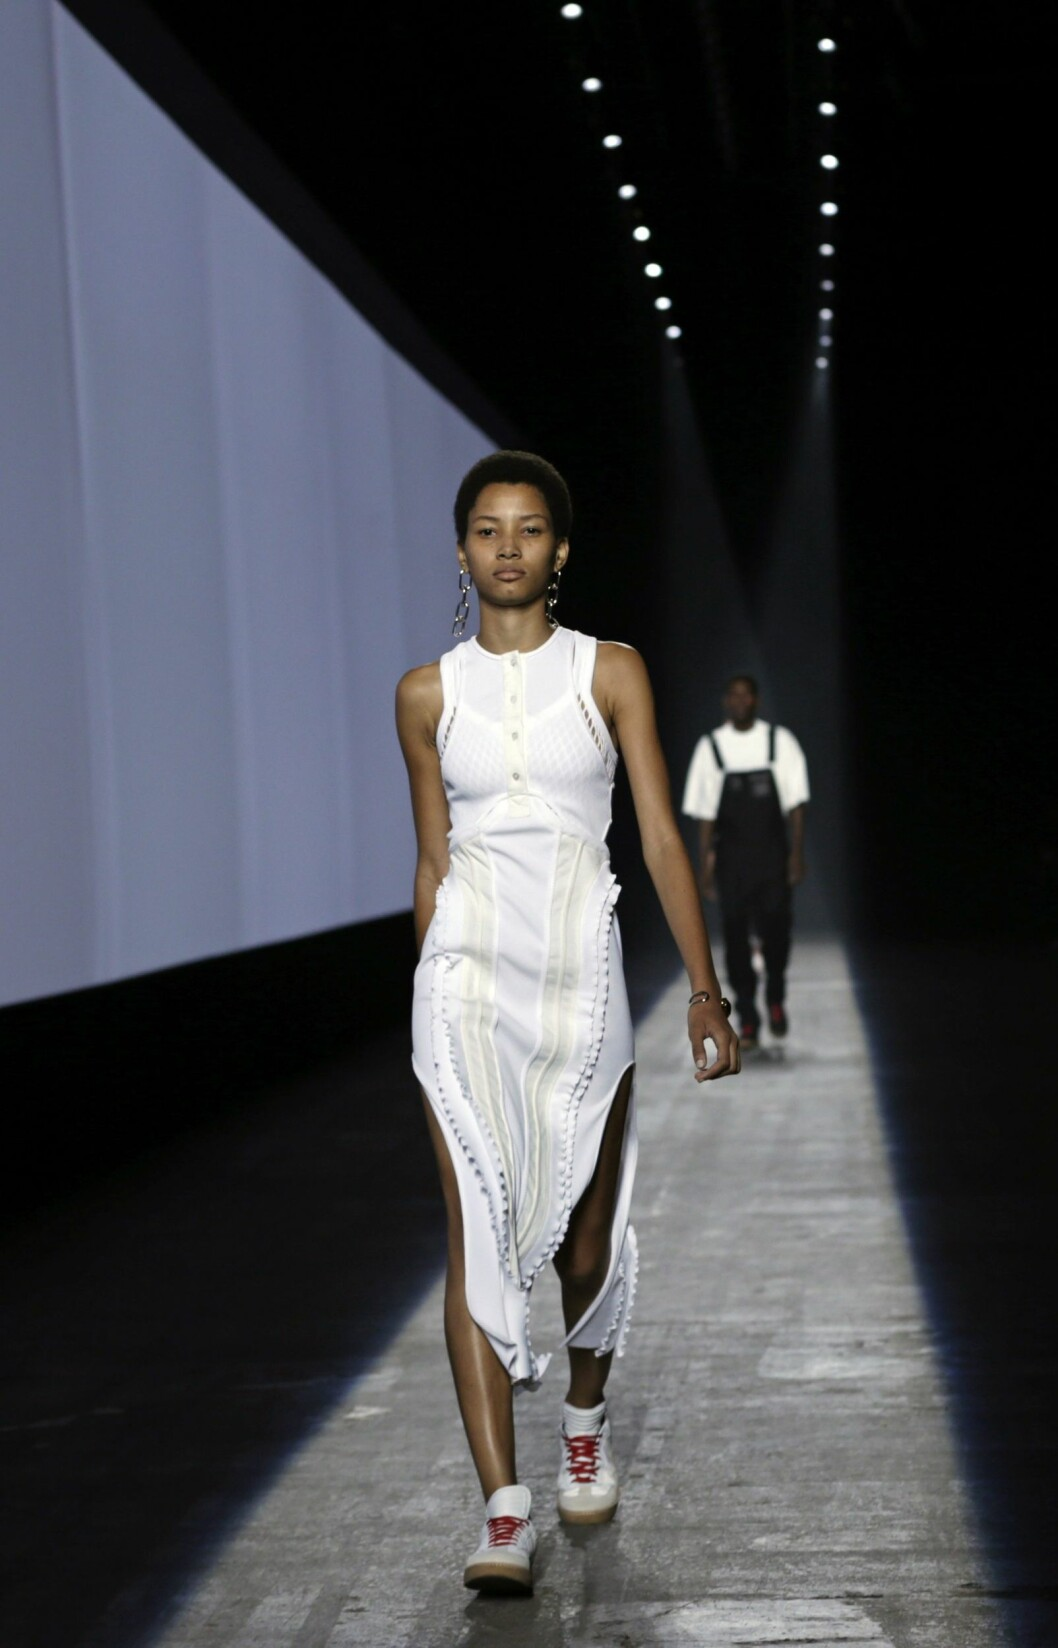 epa04928196 A model presents a creation from the Spring 2016 collection by Alexander Wang, during New York Fashion Week in New York, New York, USA, 12 September 2015. The Spring 2016 collections are presented from 10 to 17 September.  EPA/PETER FOLEY Foto: Epa